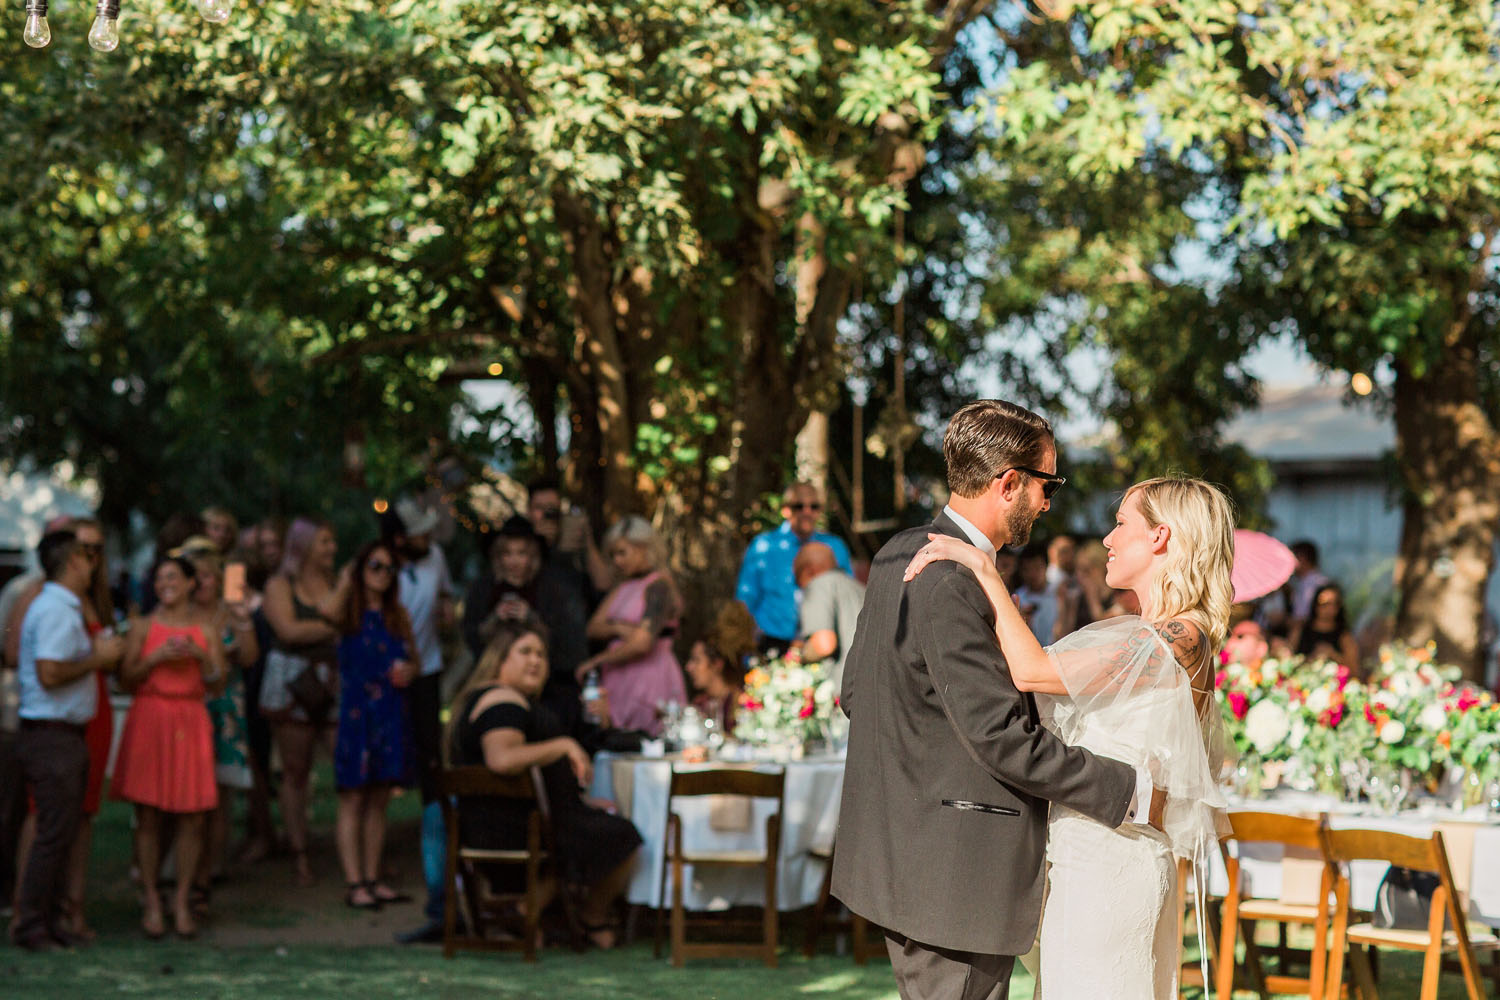 The Photege - Elegant Boho Wedding on Suburu Farm in Bakersfield California- Cassie and Darin Buoni-3047